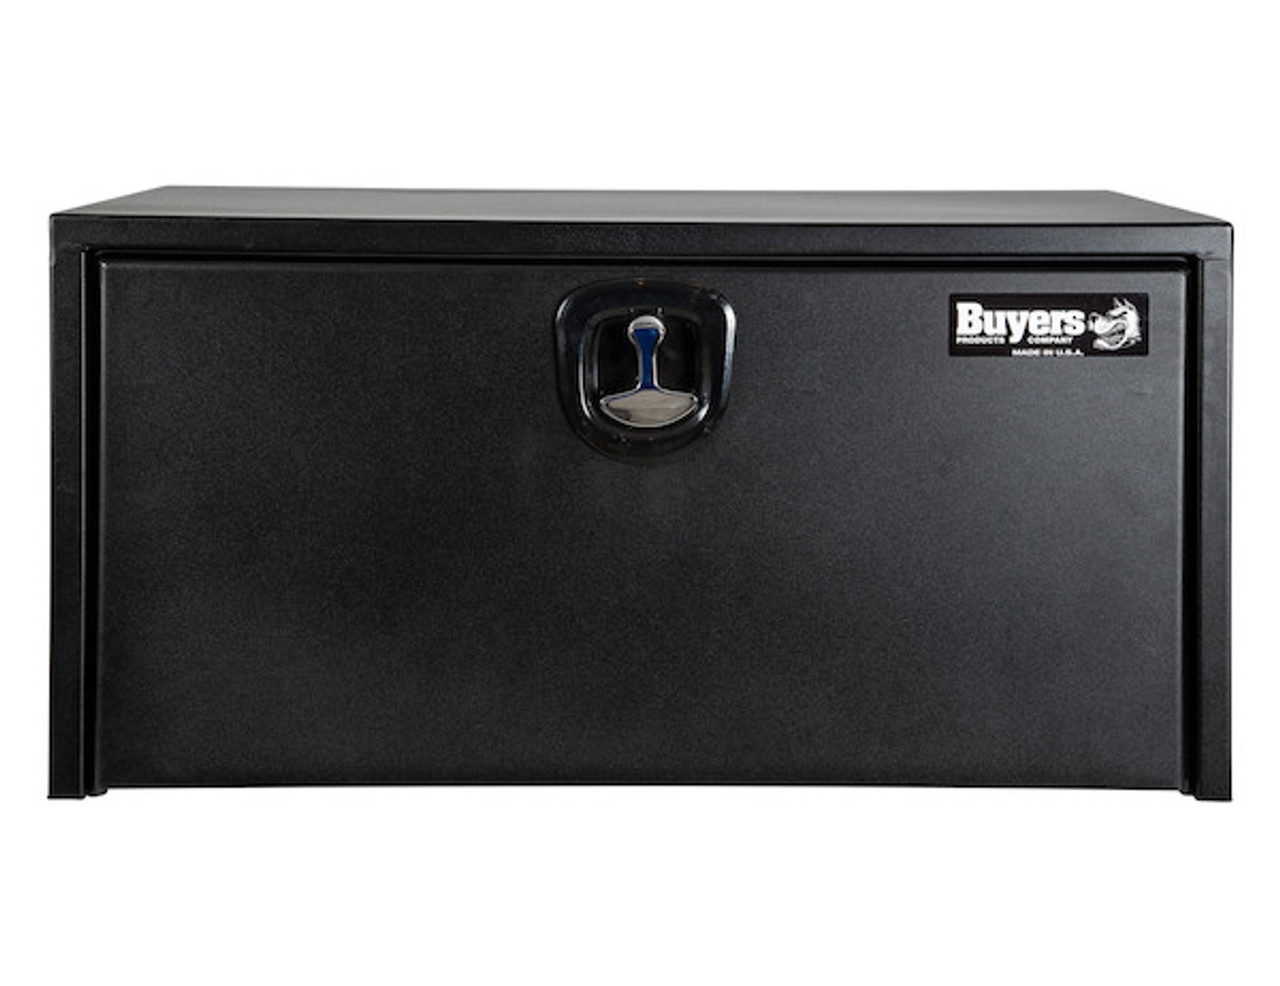 "1732510 BUYERS PRODUCTS TEXTURED MATTE BLACK STEEL UNDERBODY TRUCK TOOLBOX WITH 3-POINT LATCH 18""Hx18""Dx48""W  Picture # 2"